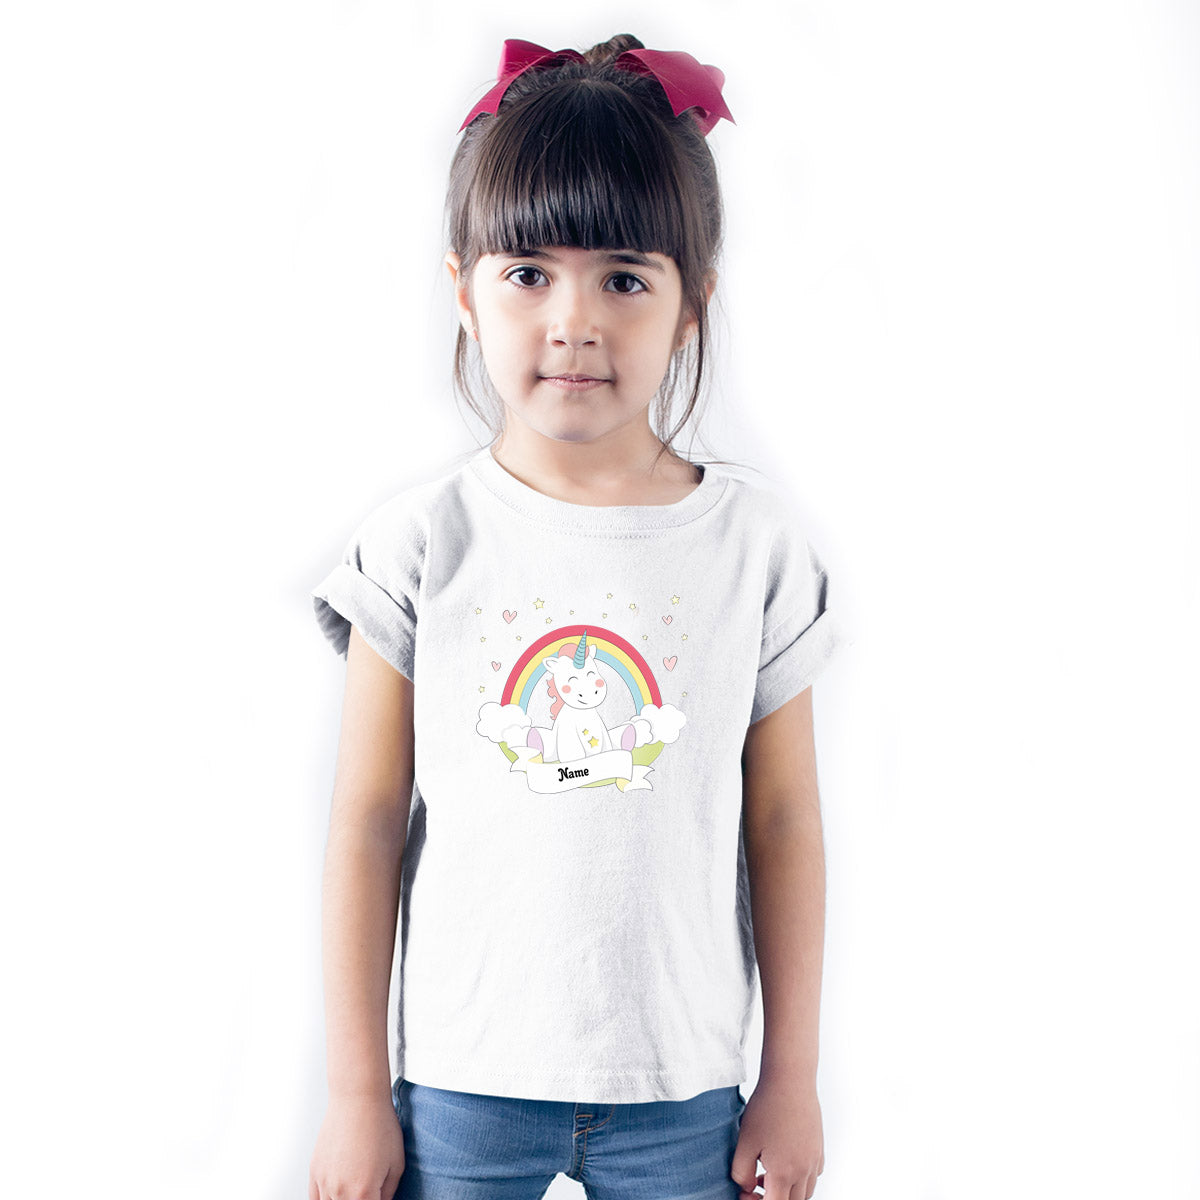 Sprinklecart Personalized Name Printed Dreaming Unicorn Kids Poly-Cotton T Shirt (White)